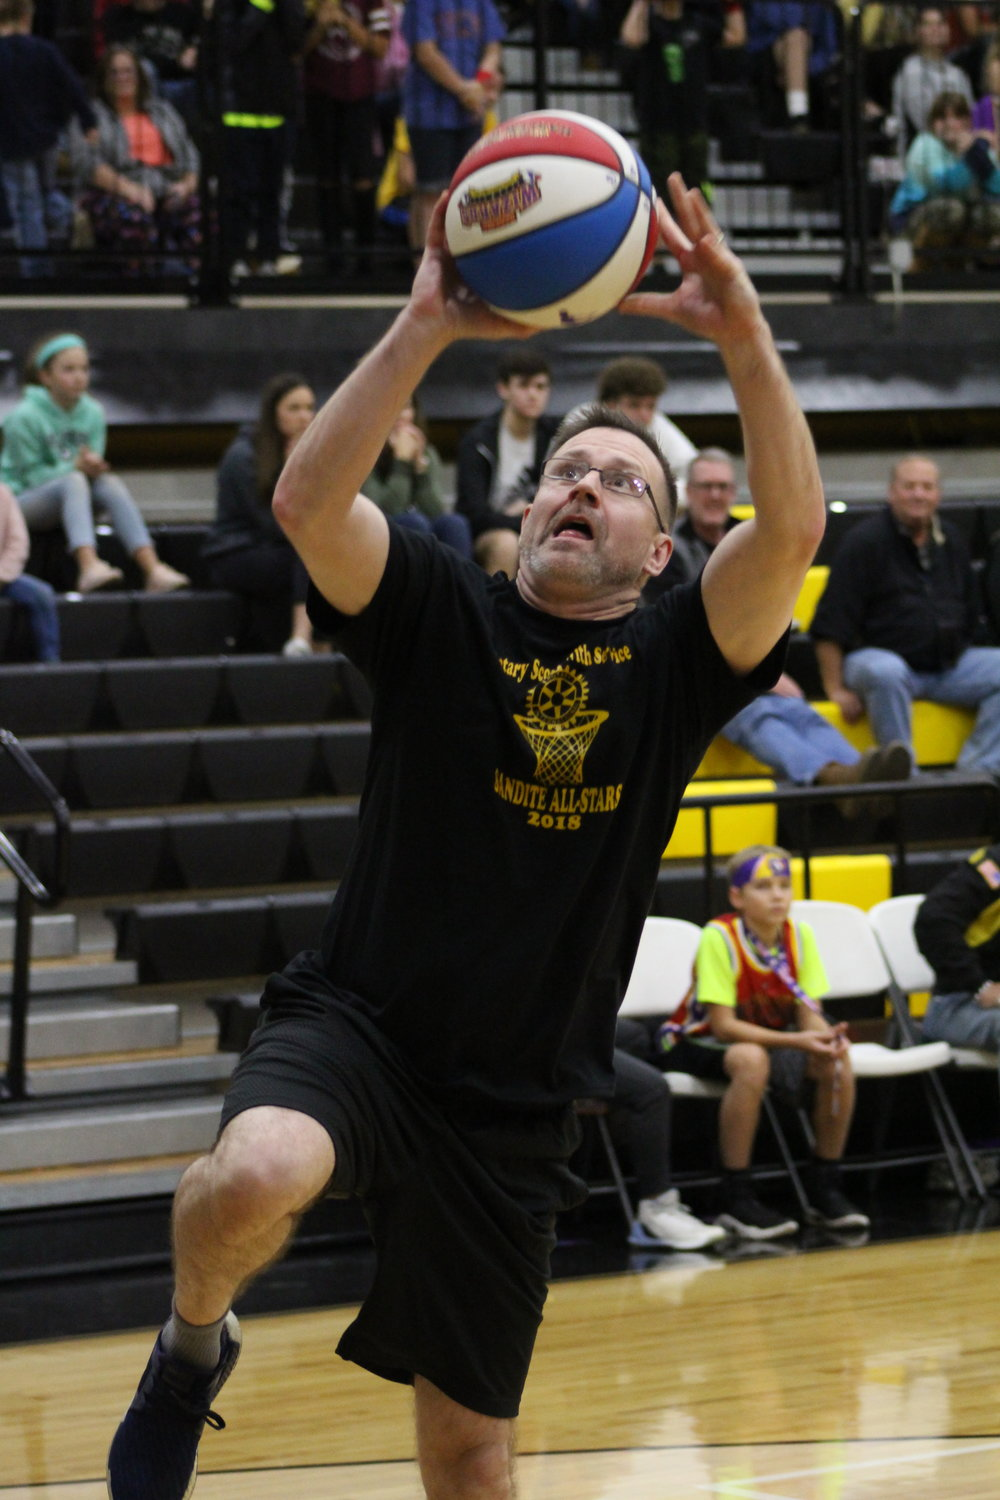 HillSpring Pastor Brent Kellogg goes for a layup in Thursday's exhibition match against the Harlem Wizards. (Photo: Scott Emigh).    Click here to view full photo gallery.